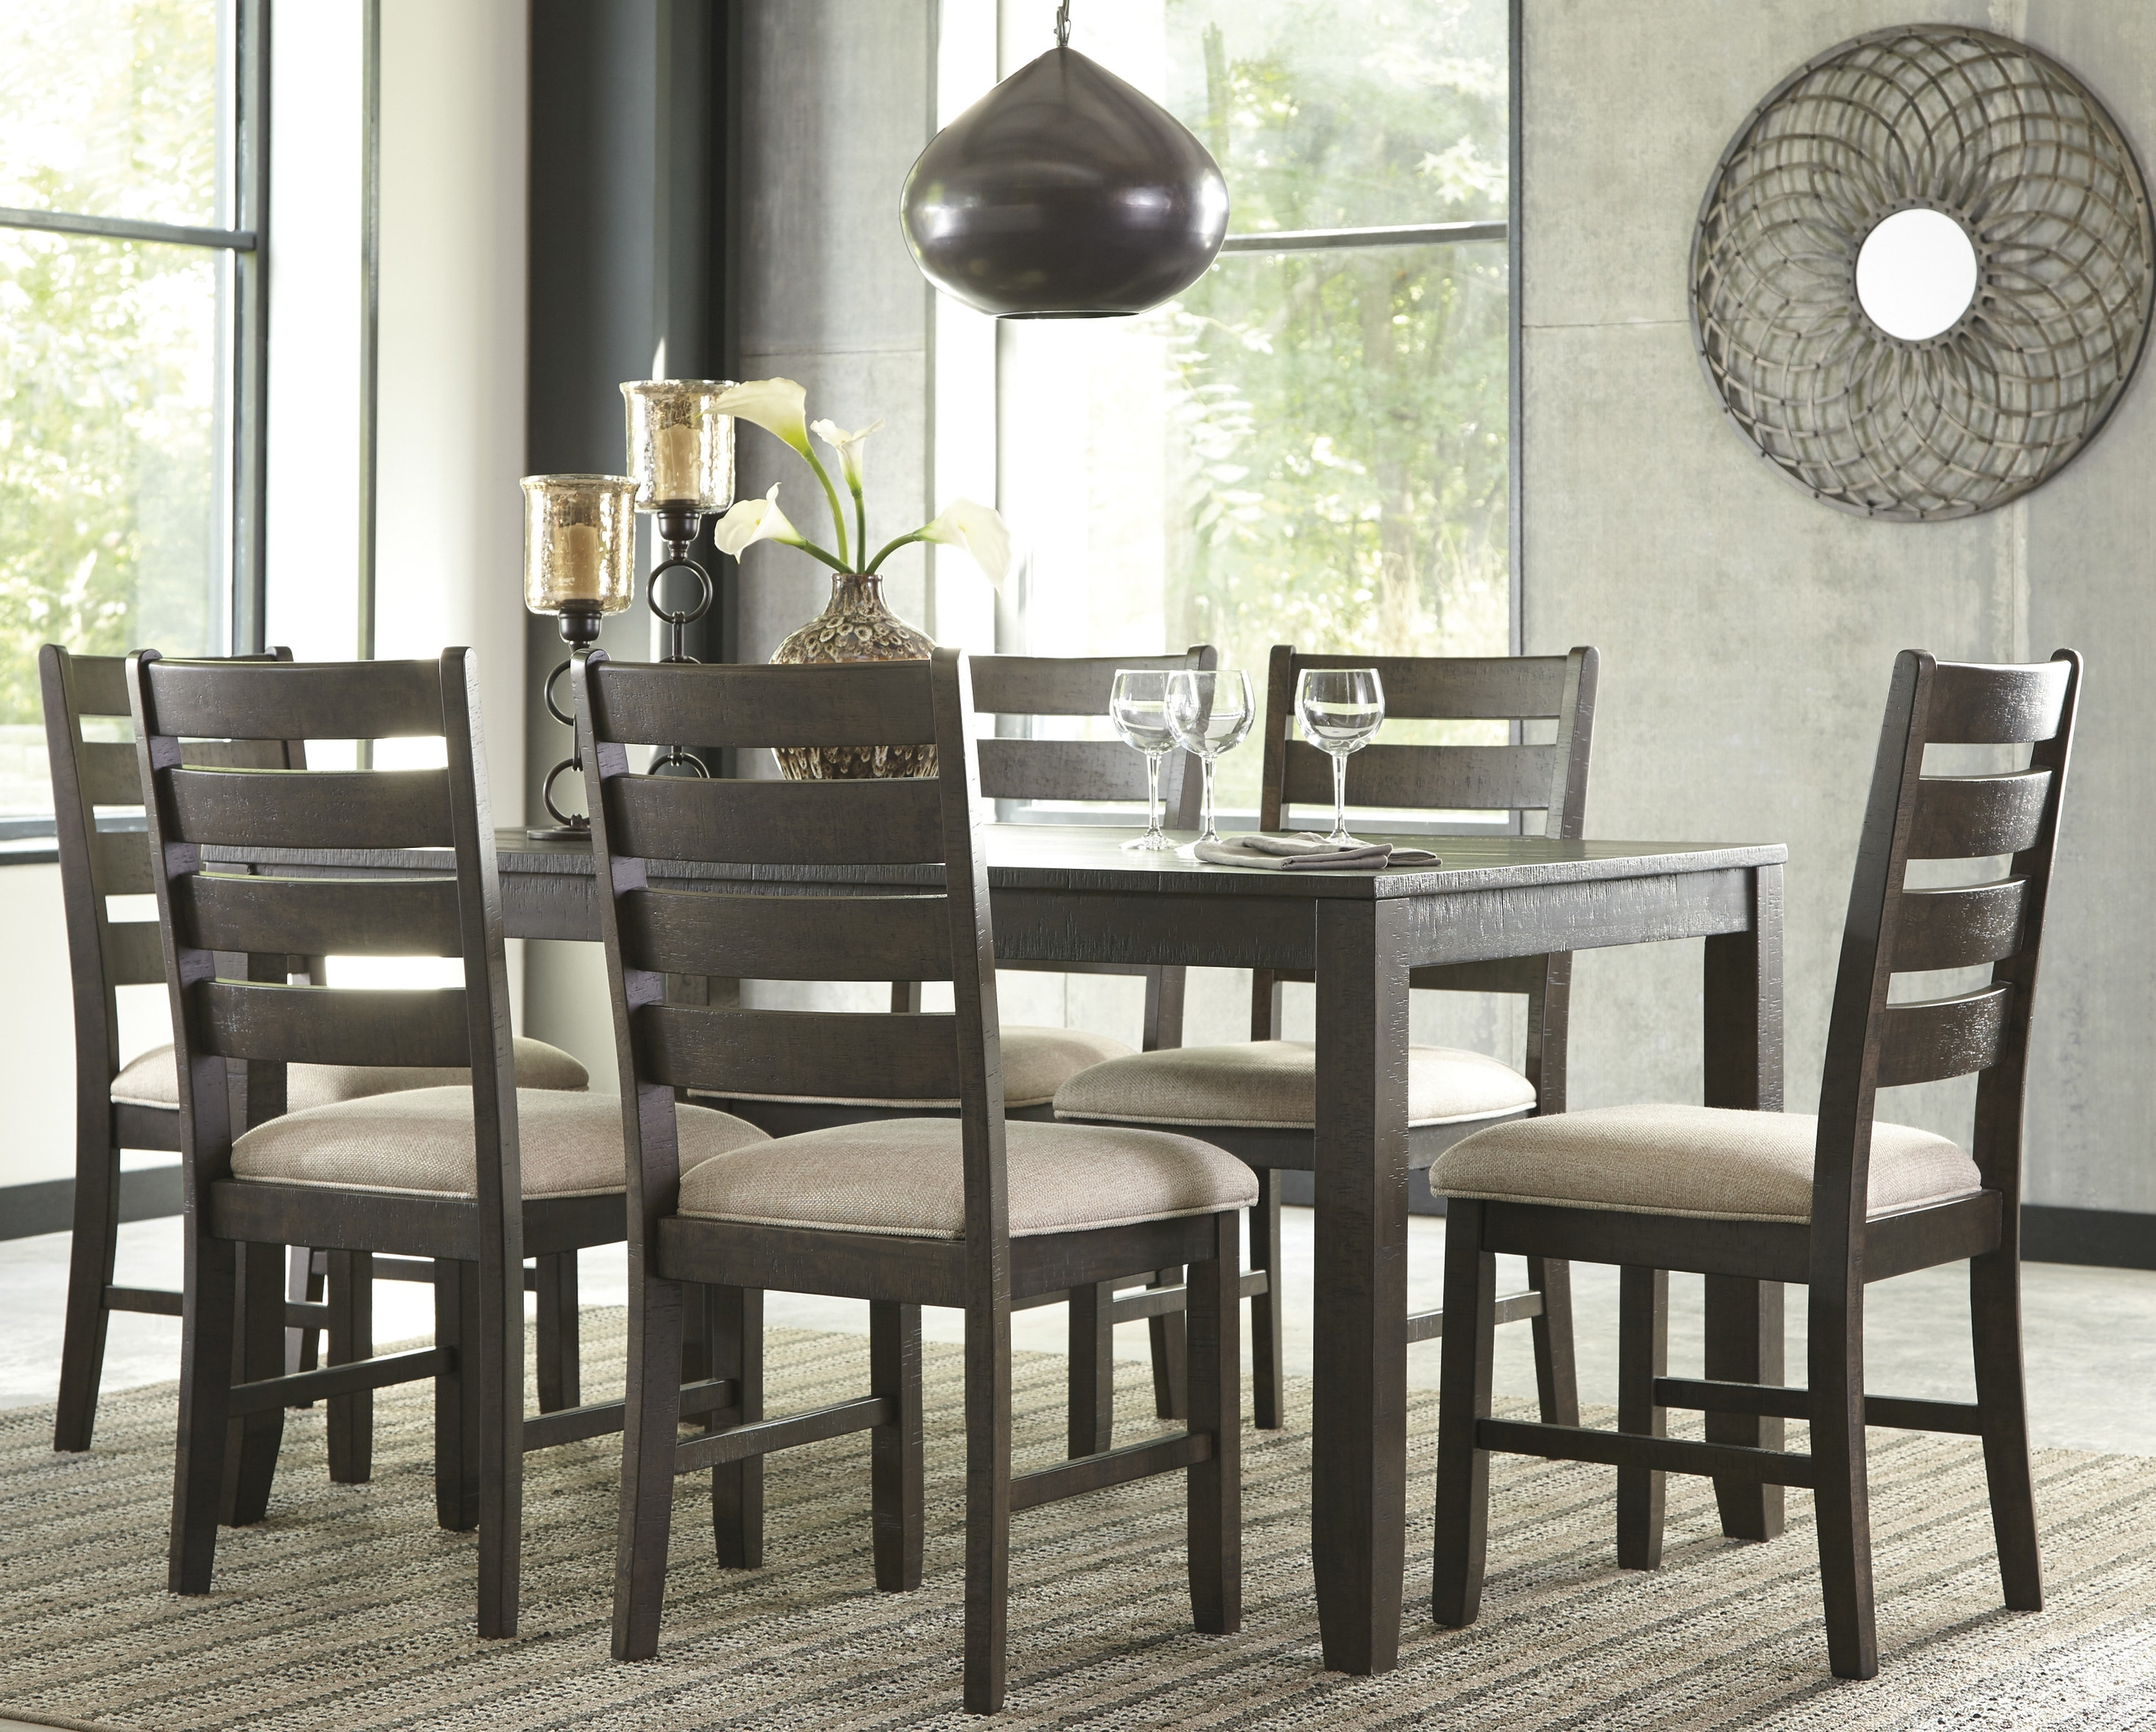 Partridge 7 Piece Dining Sets With Widely Used Choosing The Right 7 Piece Dining Set – Goodworksfurniture (View 18 of 25)